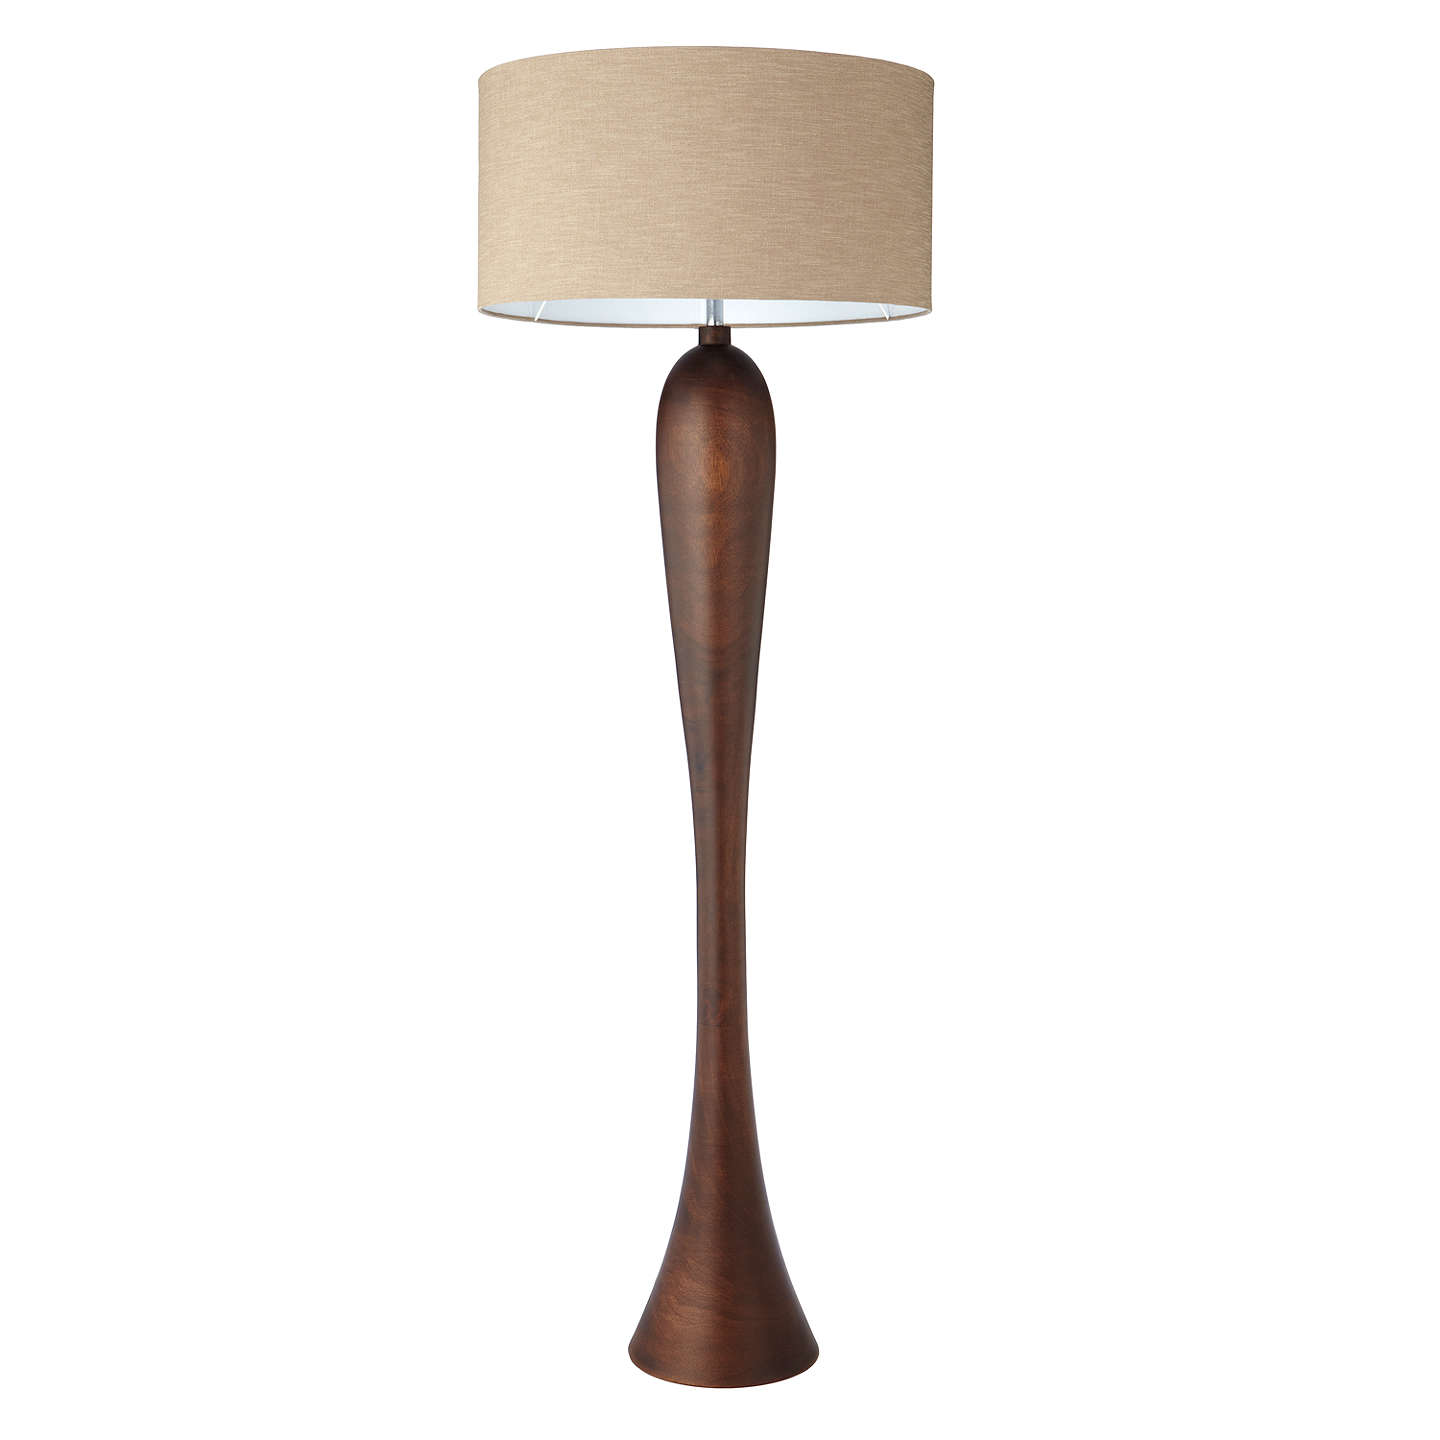 Offer john lewis joanna floor lamp at john lewis buyjohn lewis joanna floor lamp online at johnlewis mozeypictures Choice Image